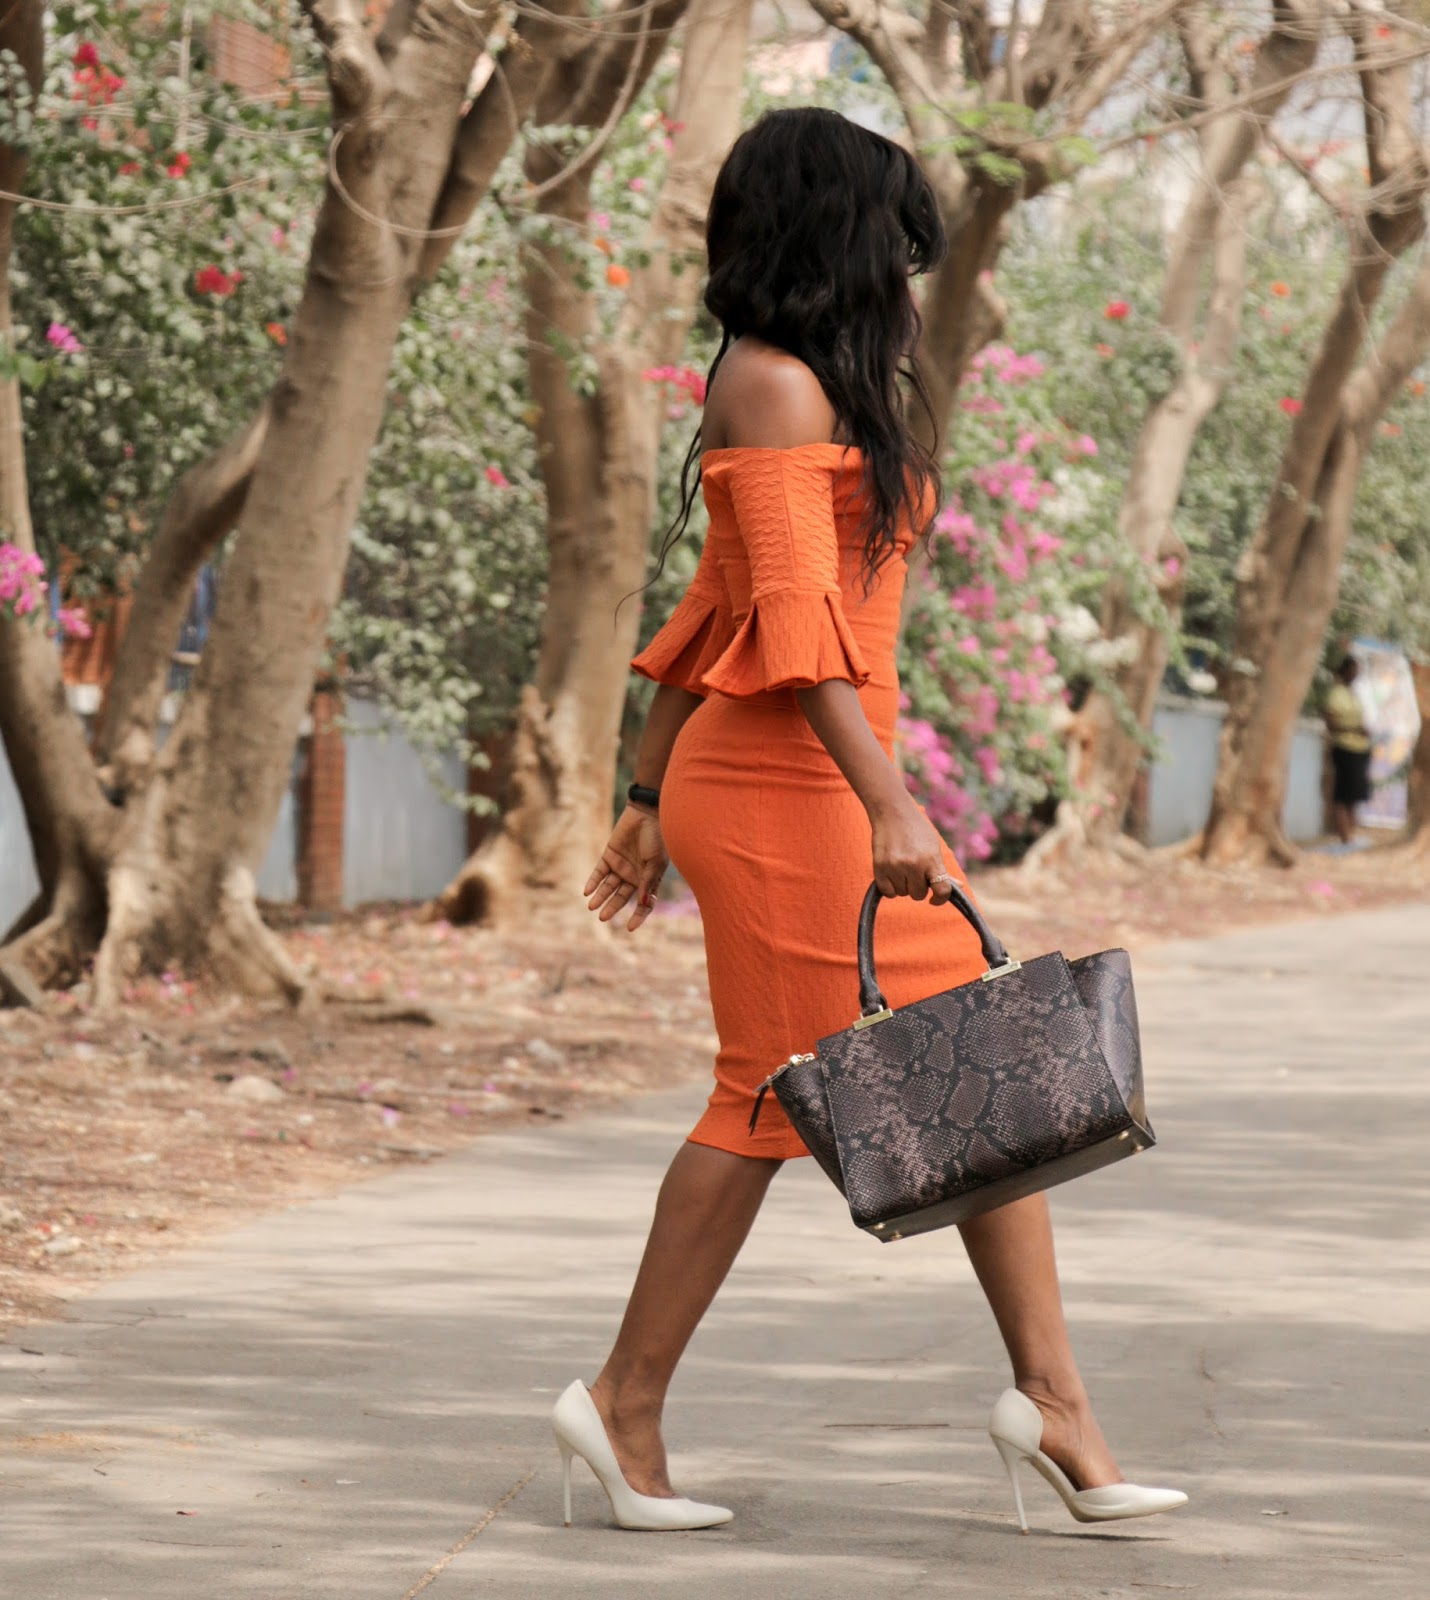 THE FLYGERIAN - Henri Bendel Snake Print Bag from The Flygerian and Orange off shoulder dress from Kitau and Boohoo court shoes